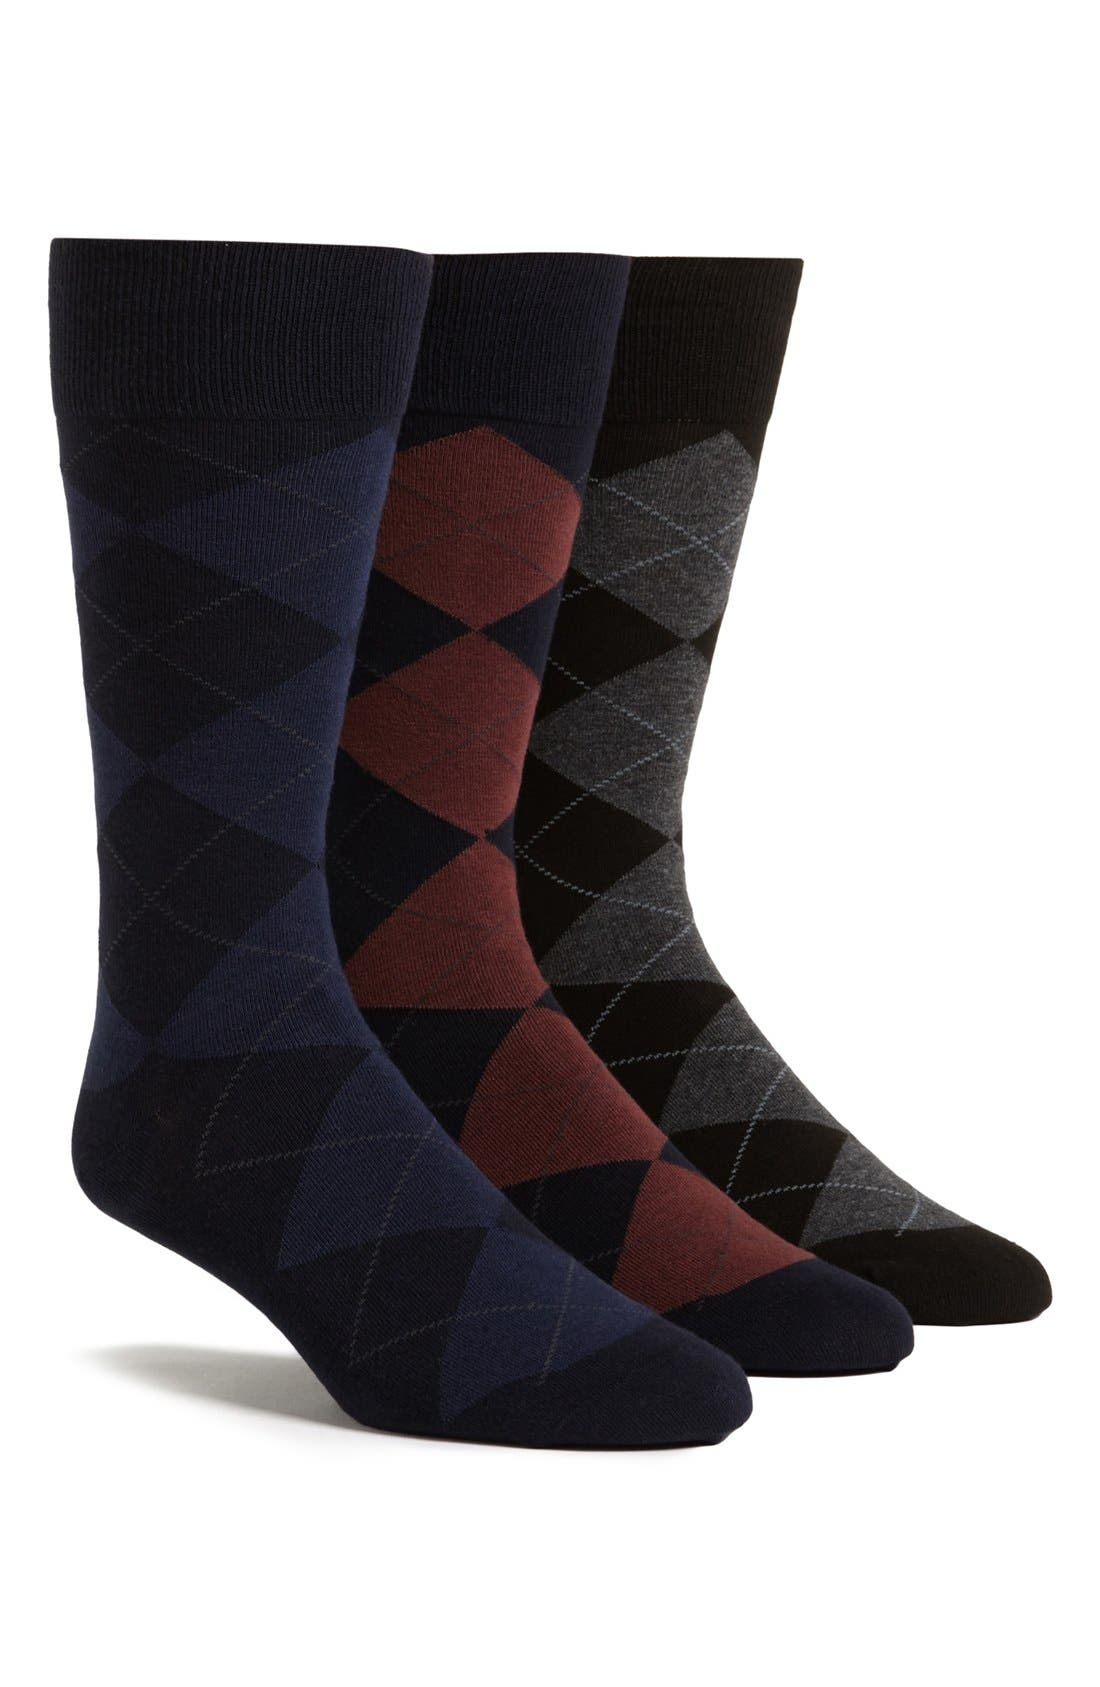 Polo Ralph Lauren 3-Pack Argyle Socks